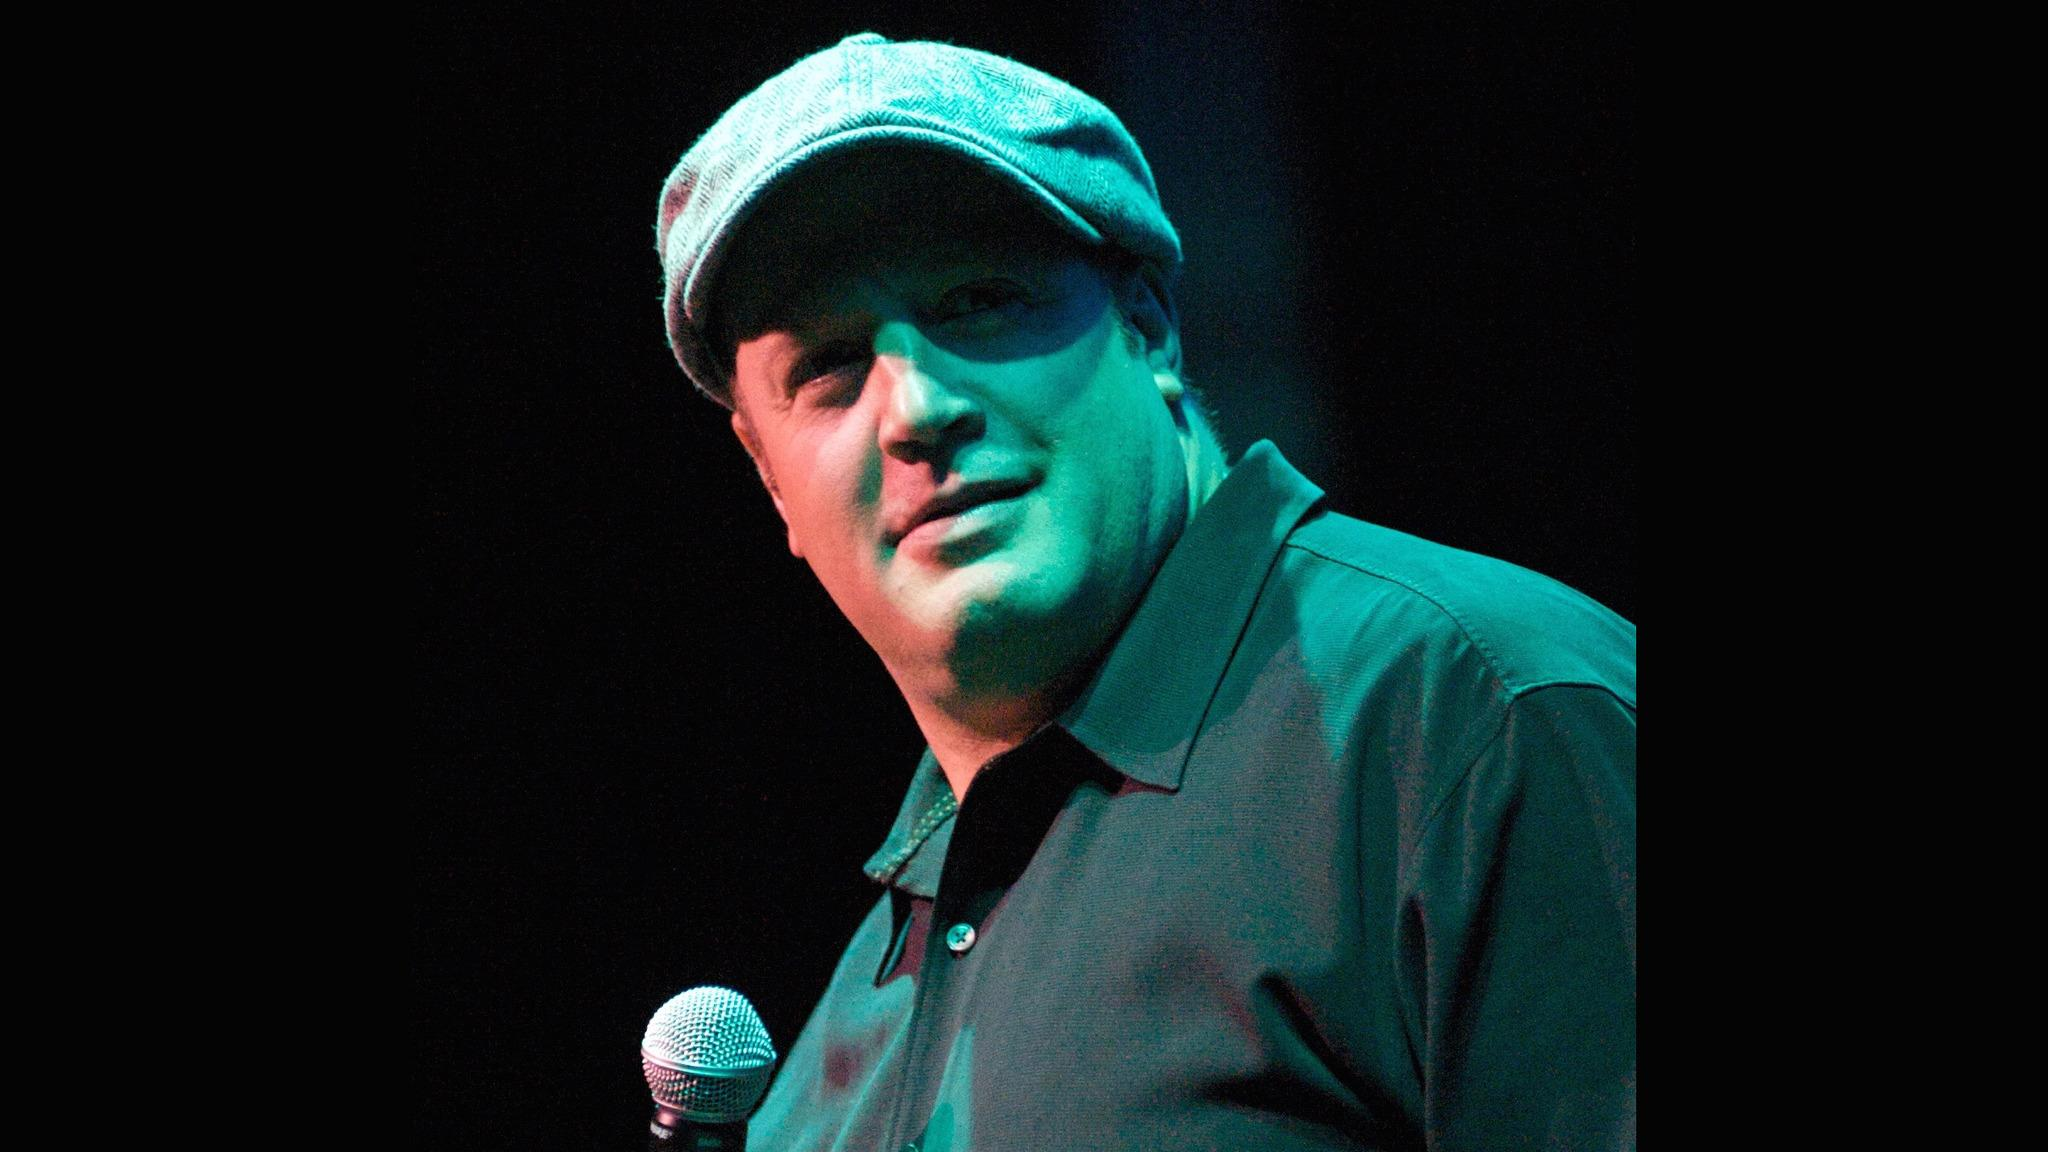 Kevin James at Pechanga Resort and Casino